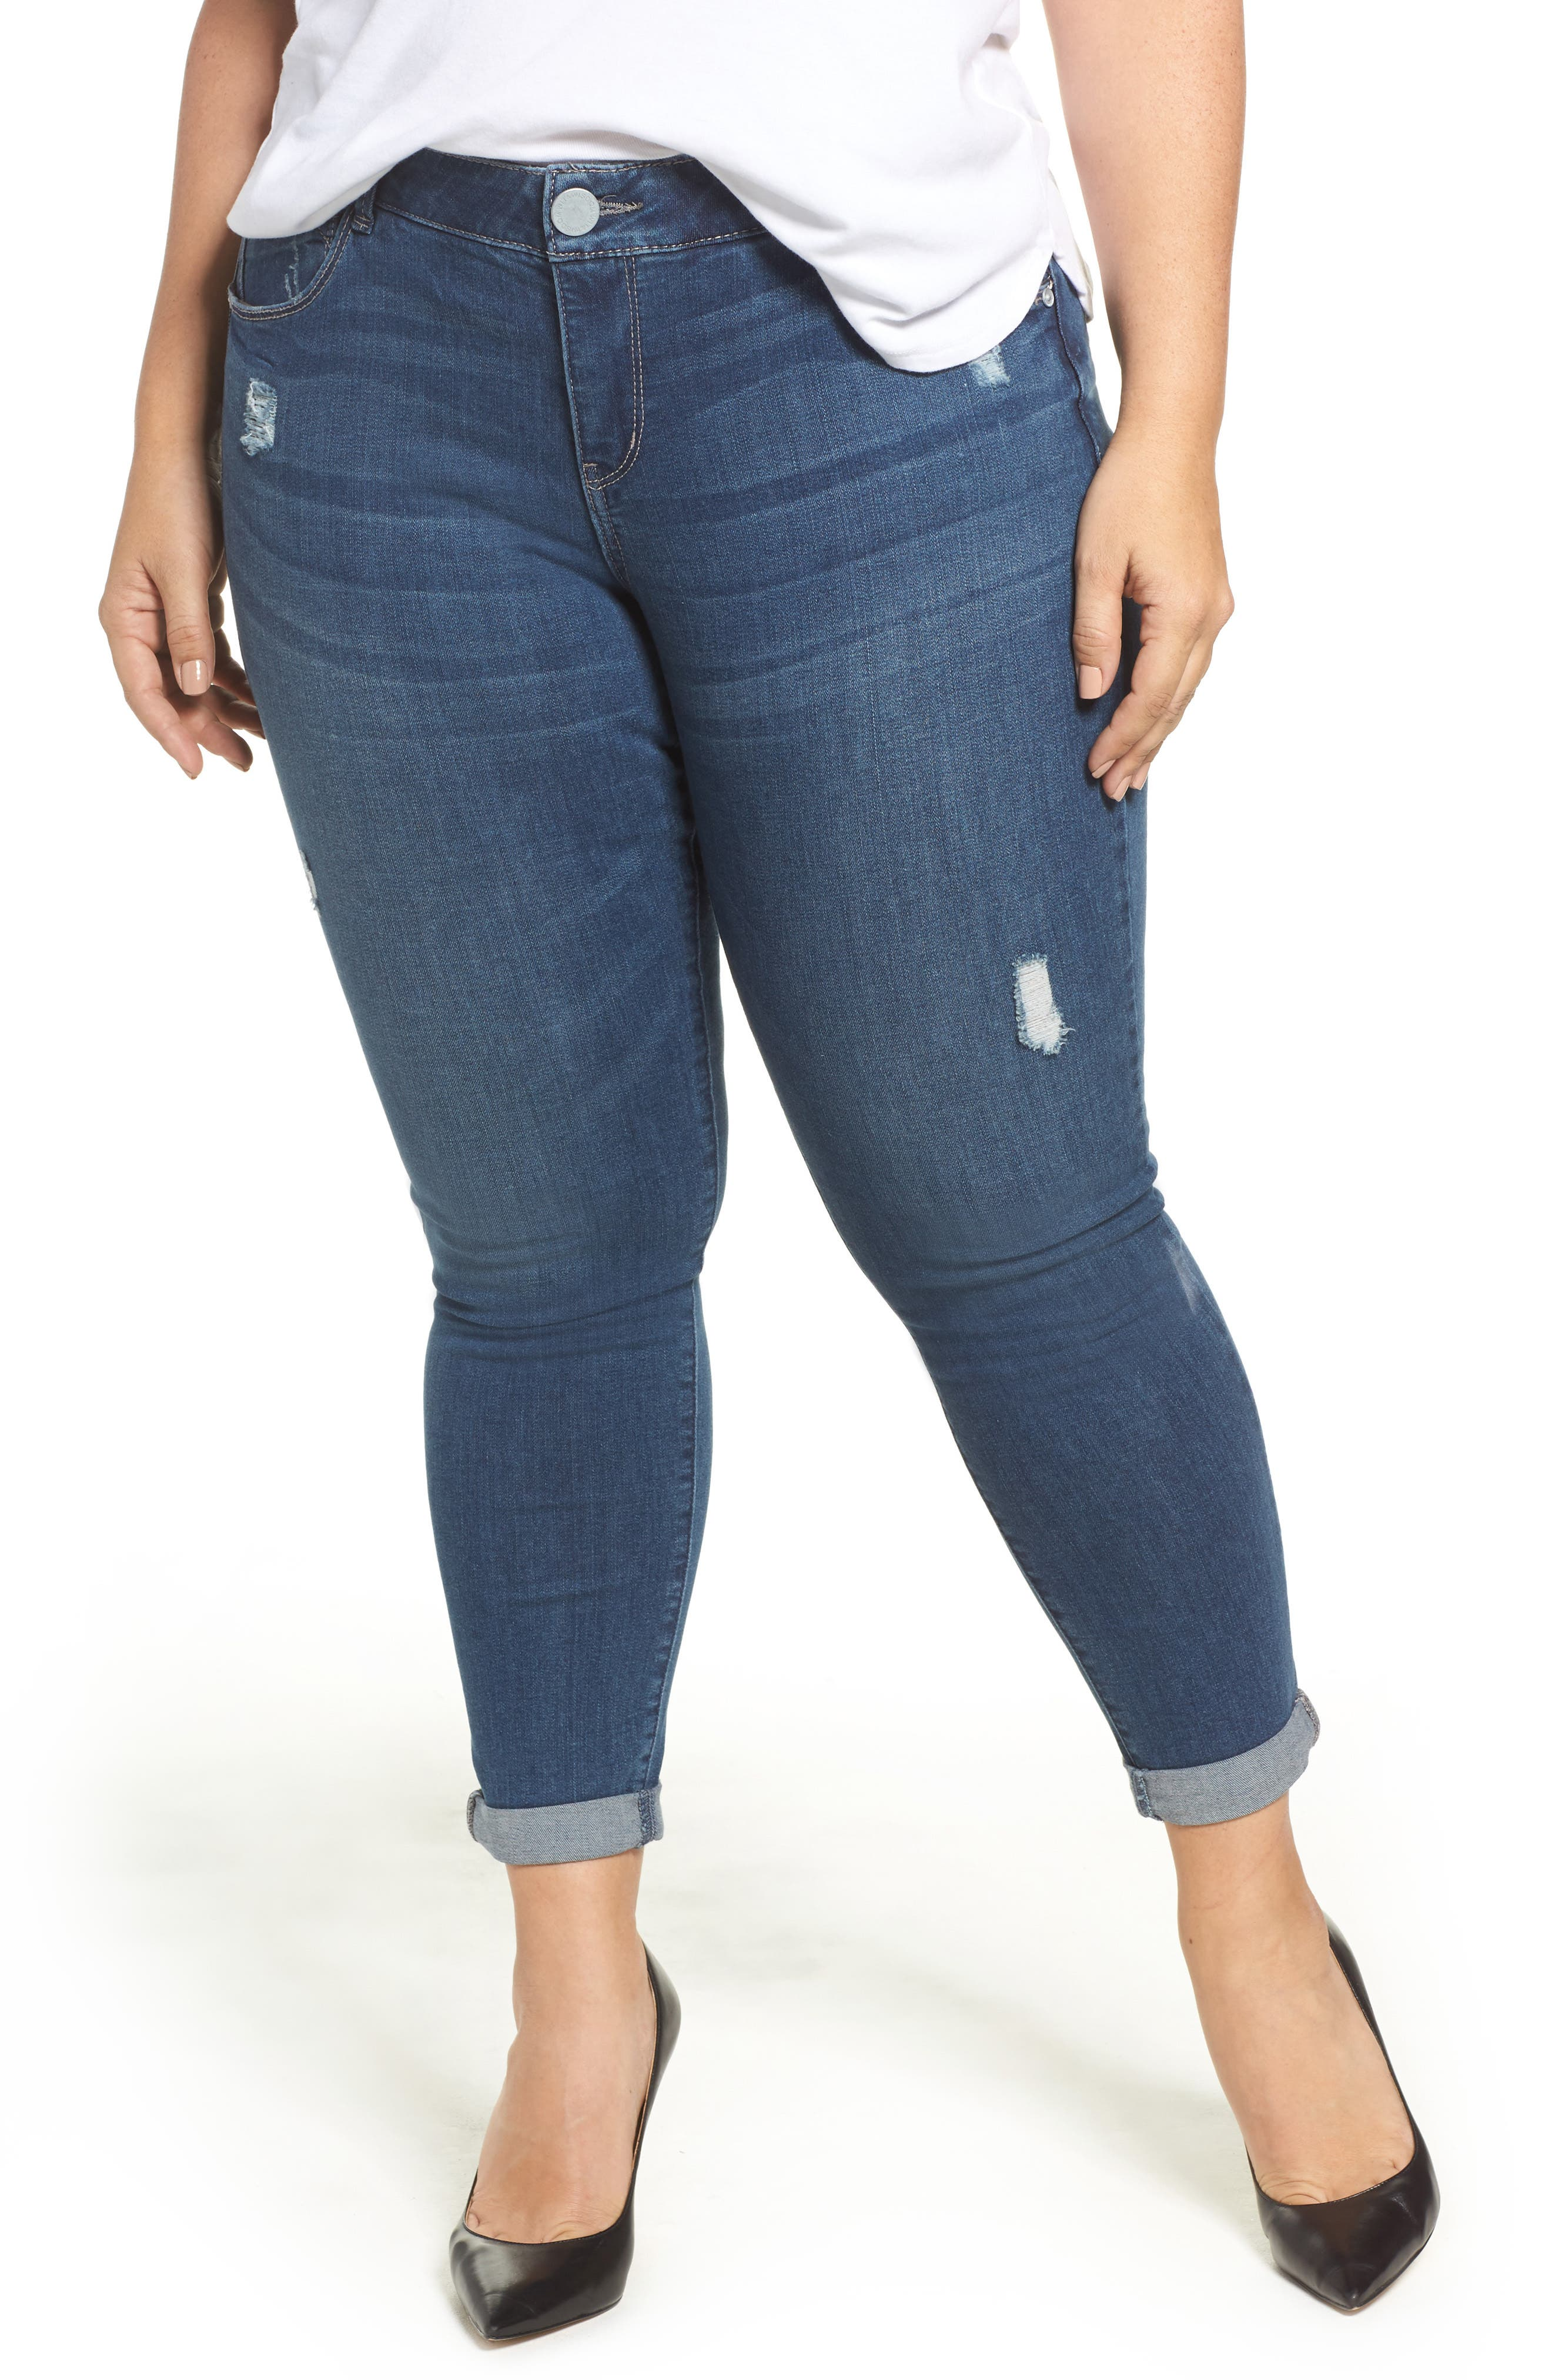 Alternate Image 1 Selected - Wit & Wisdom Ab-solution Boyfriend Ankle Jeans (Plus Size) (Nordstrom Exclusive)